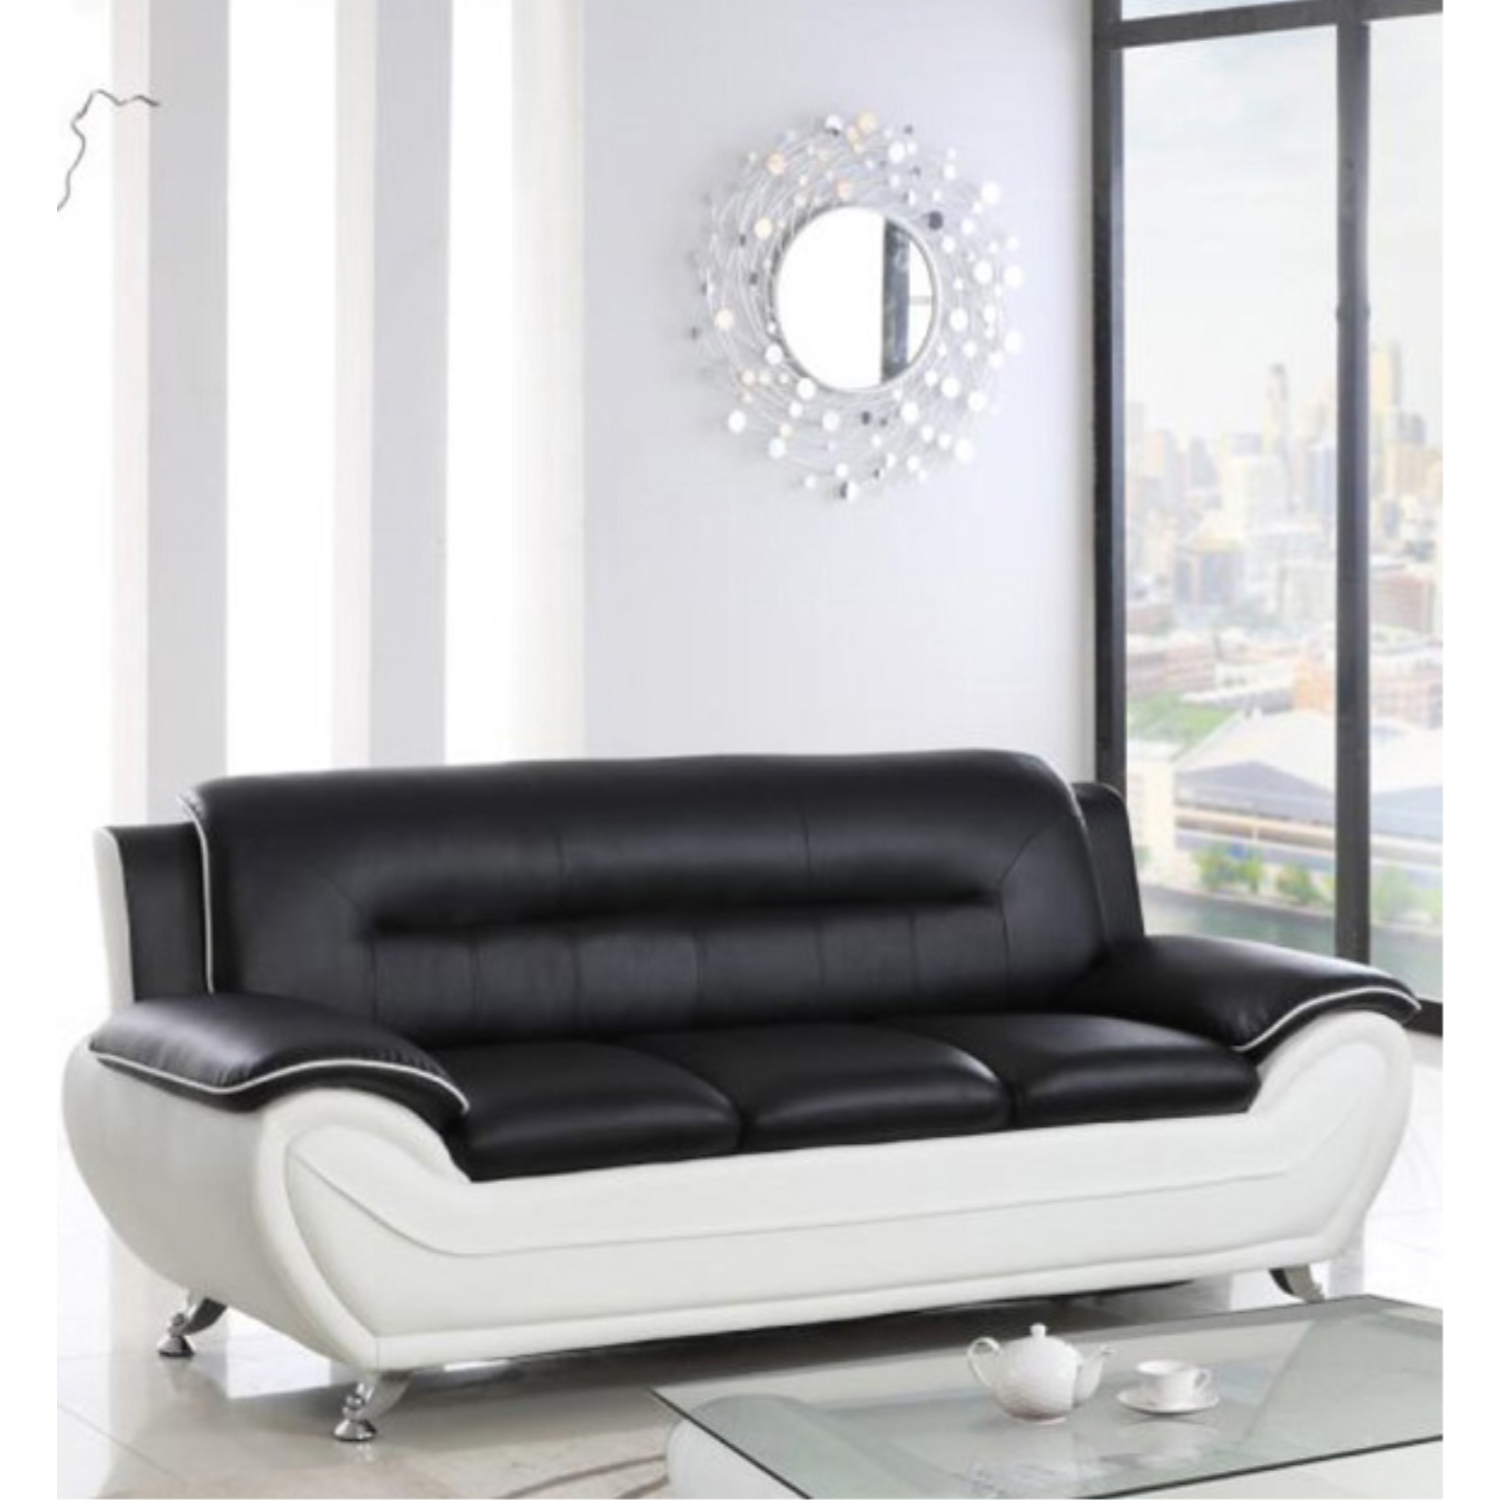 viscologic paradise pillow top premium faux leather sofa couch loveseat arm chair for home office living room black white